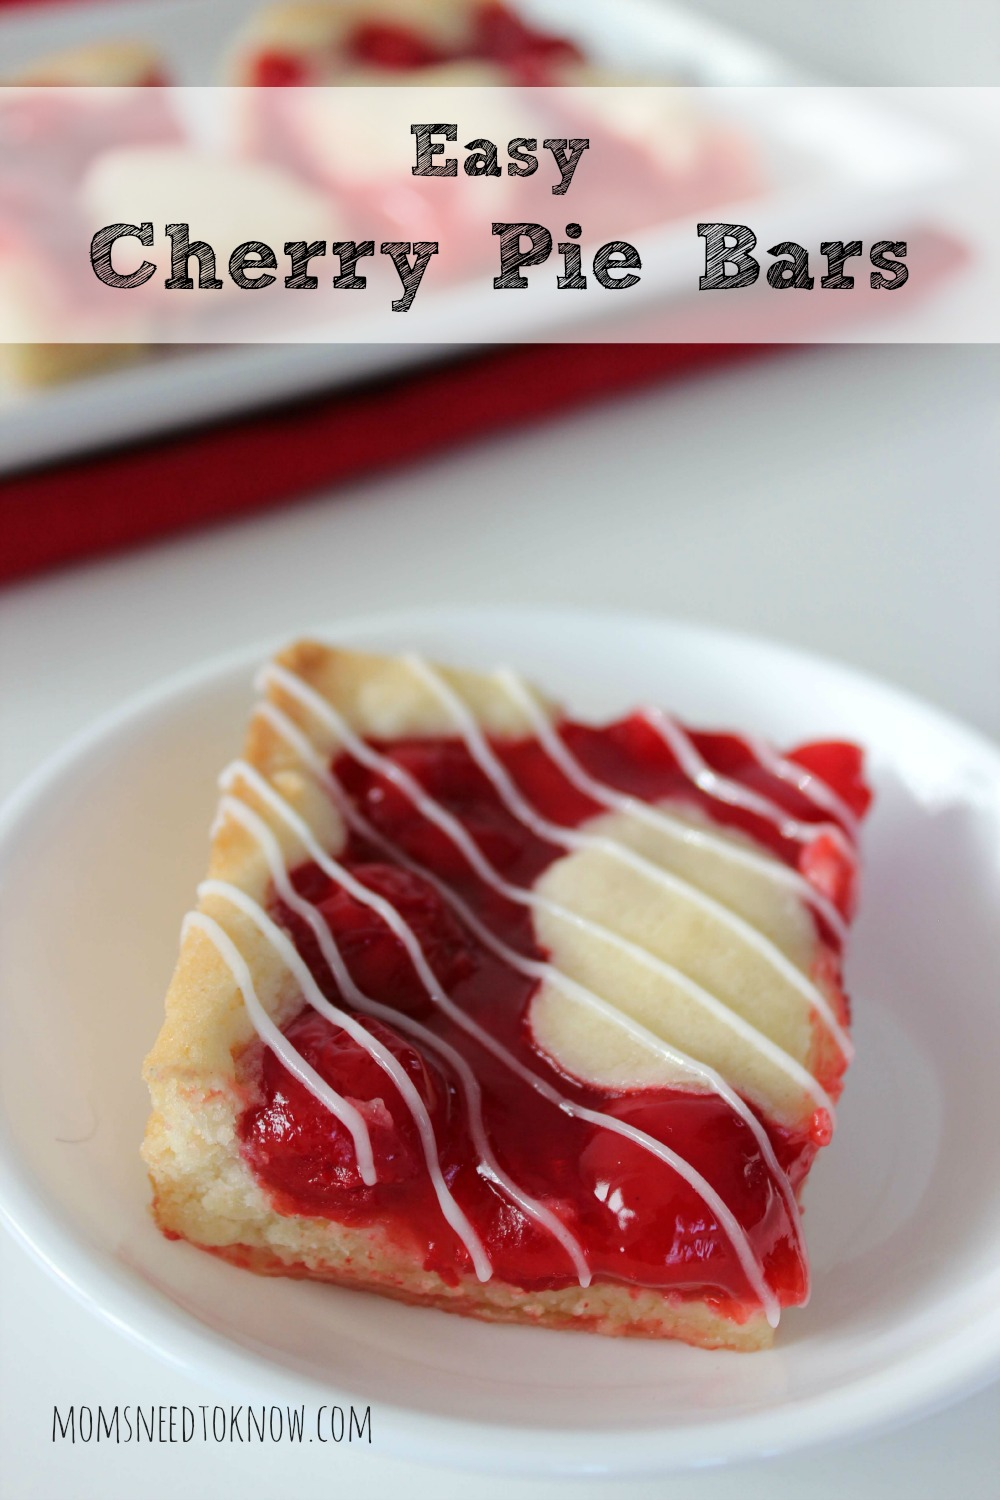 Easy Cherry Pie Bars Recipe